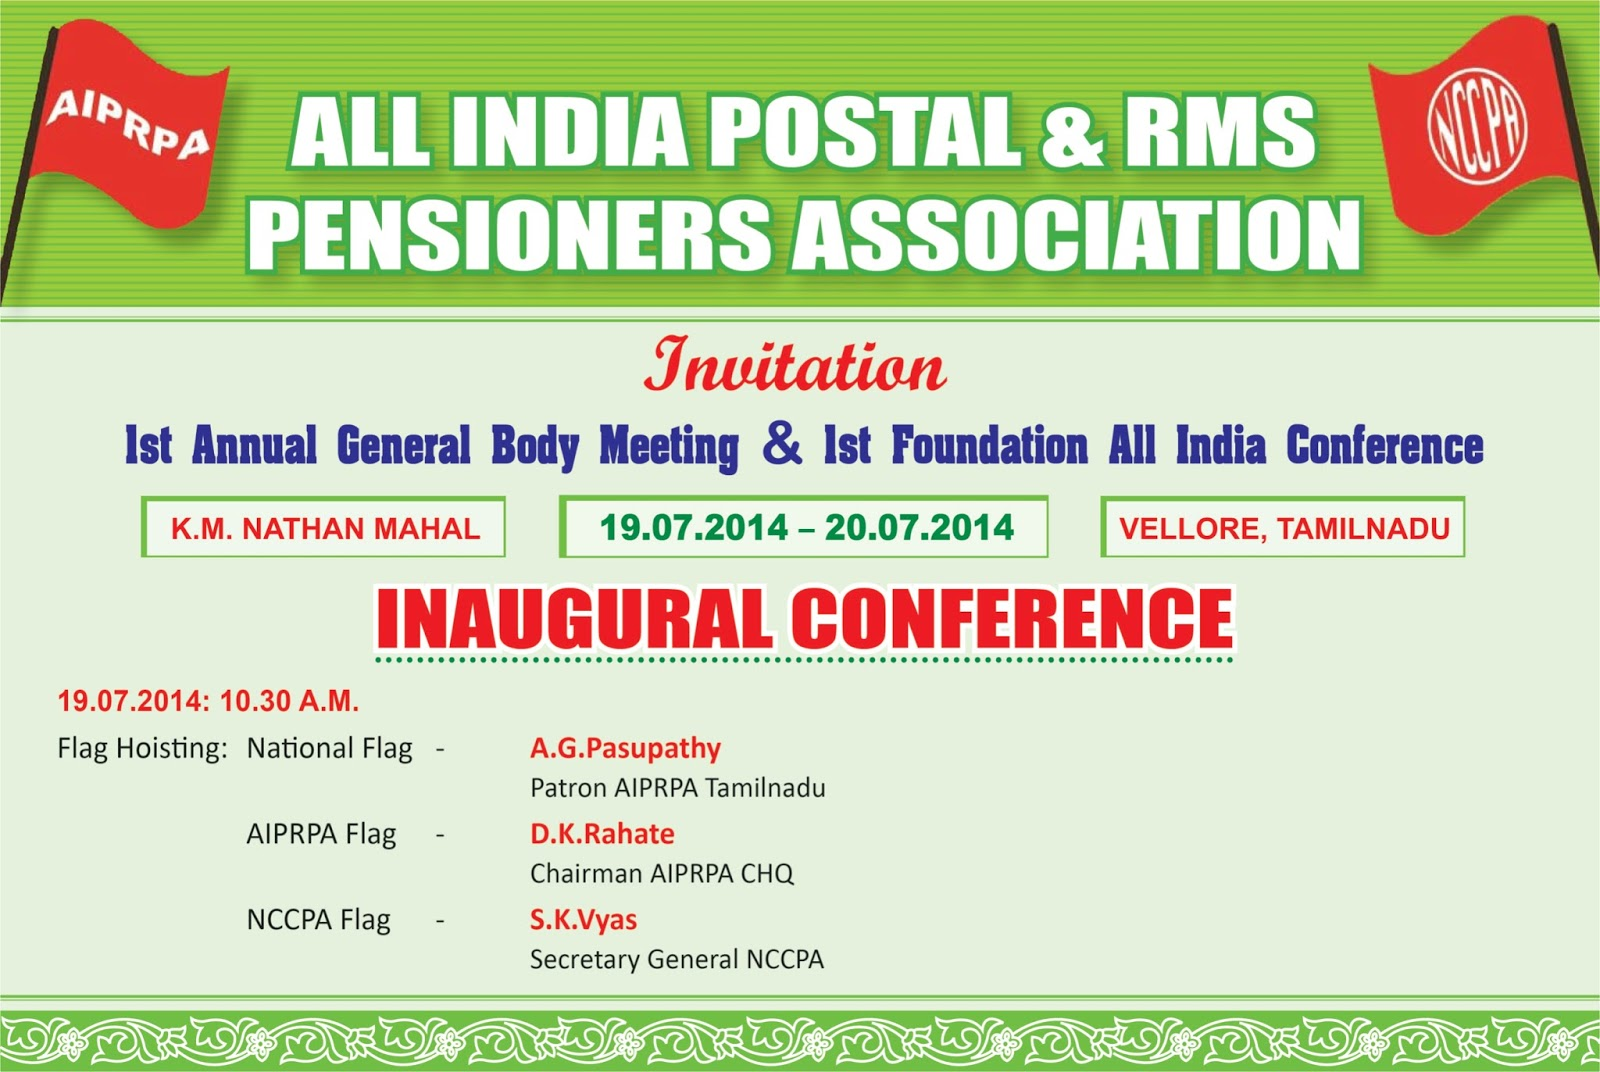 Invitation card conference purplemoon all india postal rms pensioners association invitation to st invitation samples invitation card for uhs fifth conference stopboris Choice Image